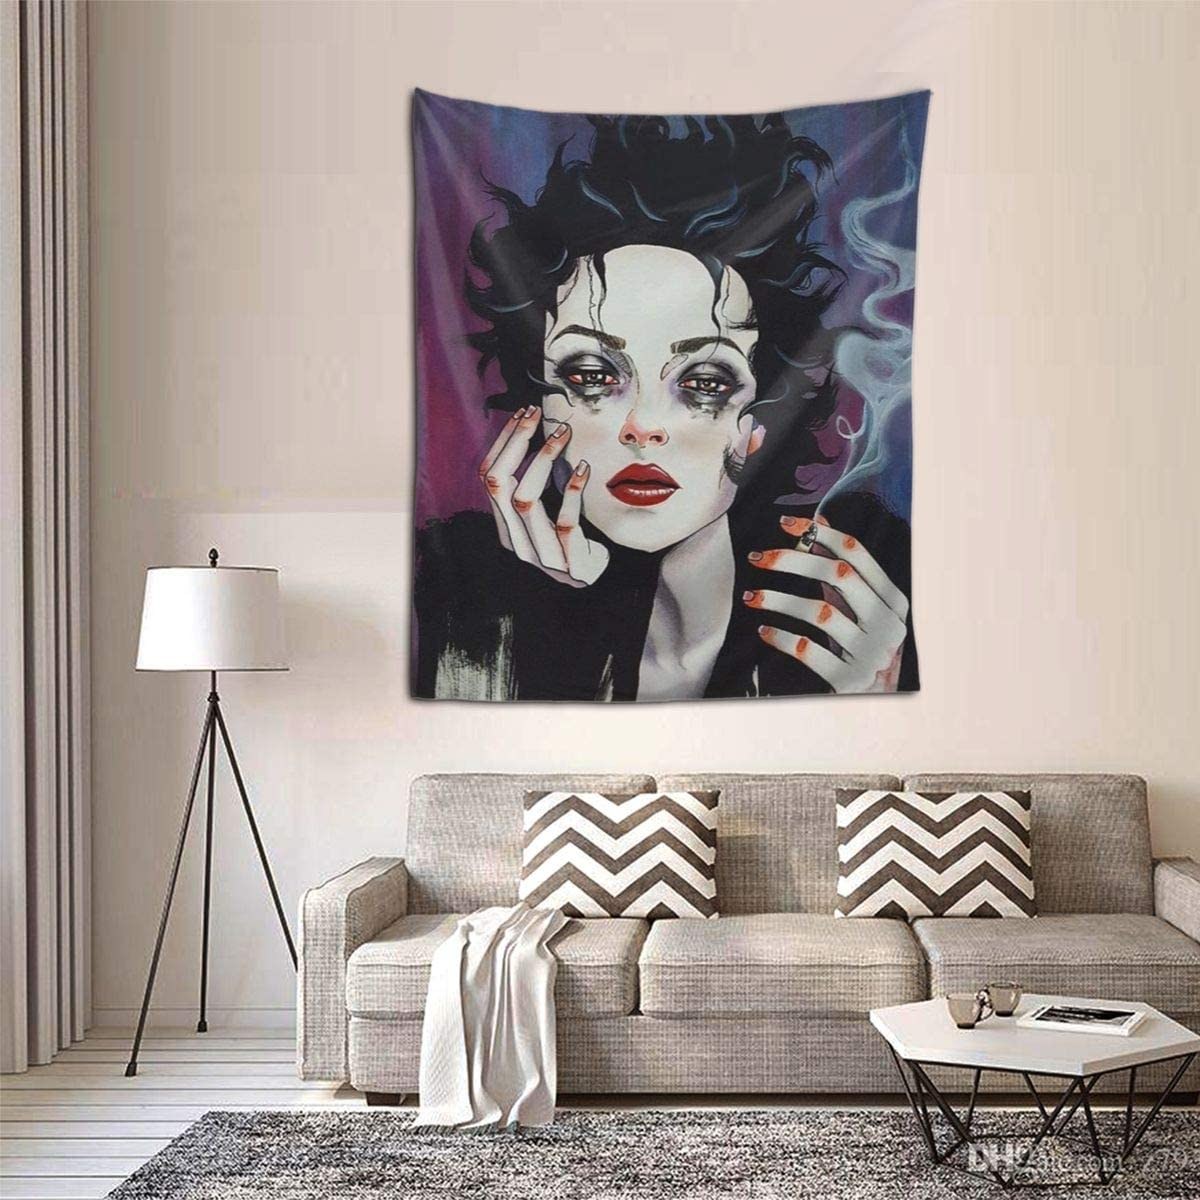 Goth Gothic Smoking Girl Wall Tapestry Hippie Tapestry Wall Hanging Home Decor Extra Large Tablecloths For Bedroom Living Room Dorm Room Everything Else